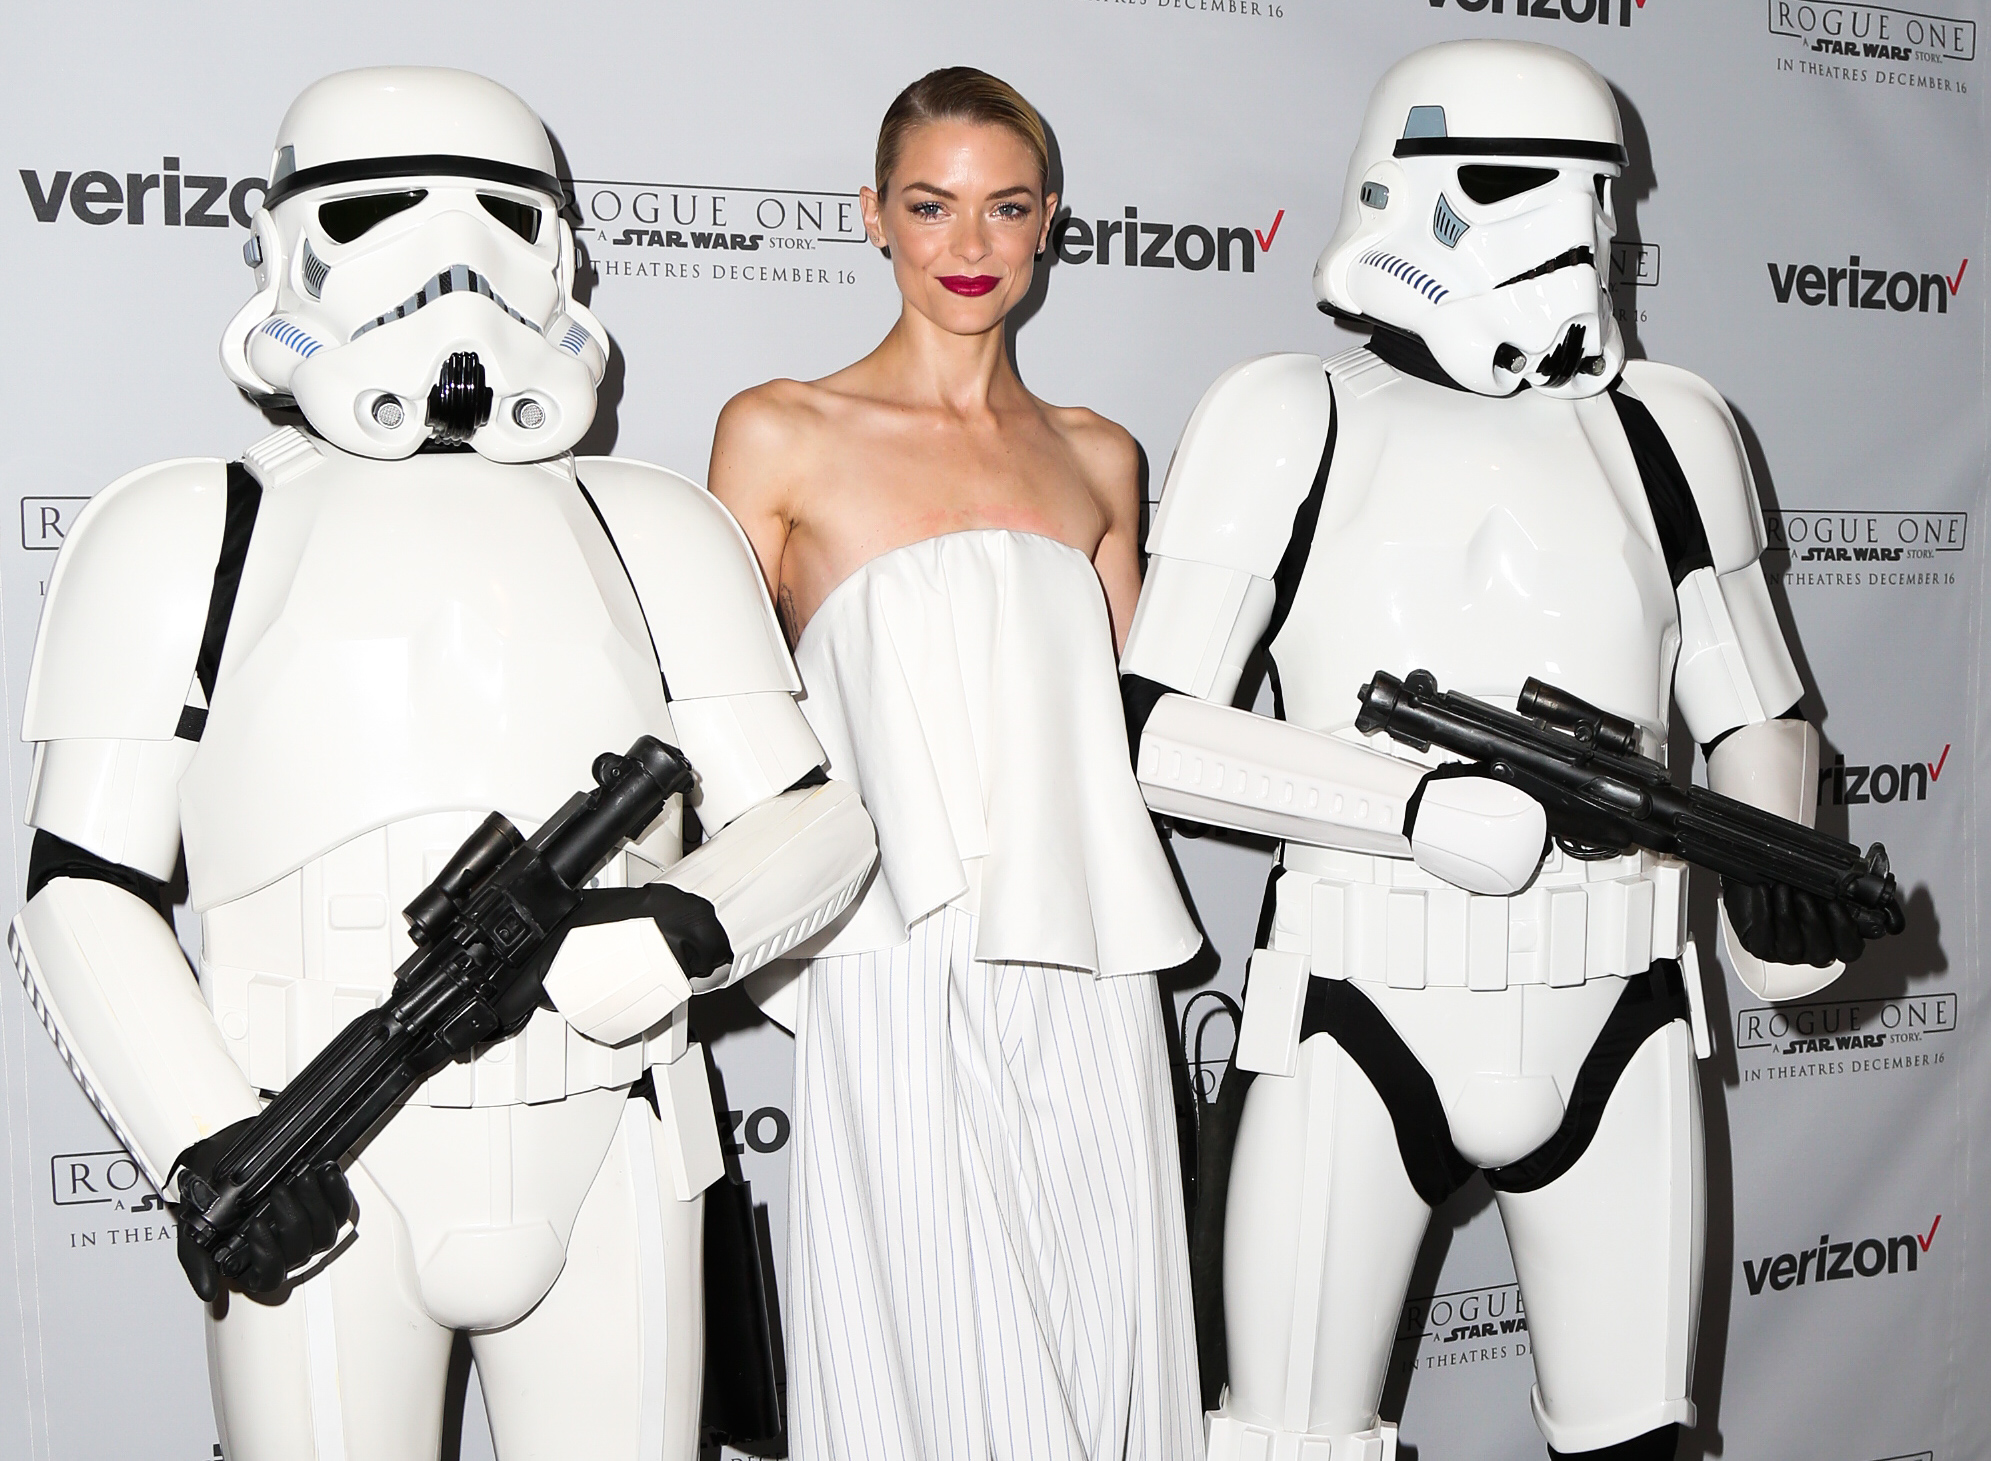 Jaime King escorted by Stormtroopers at the launch of Rogue One: Recon - A Star Wars 360 experience